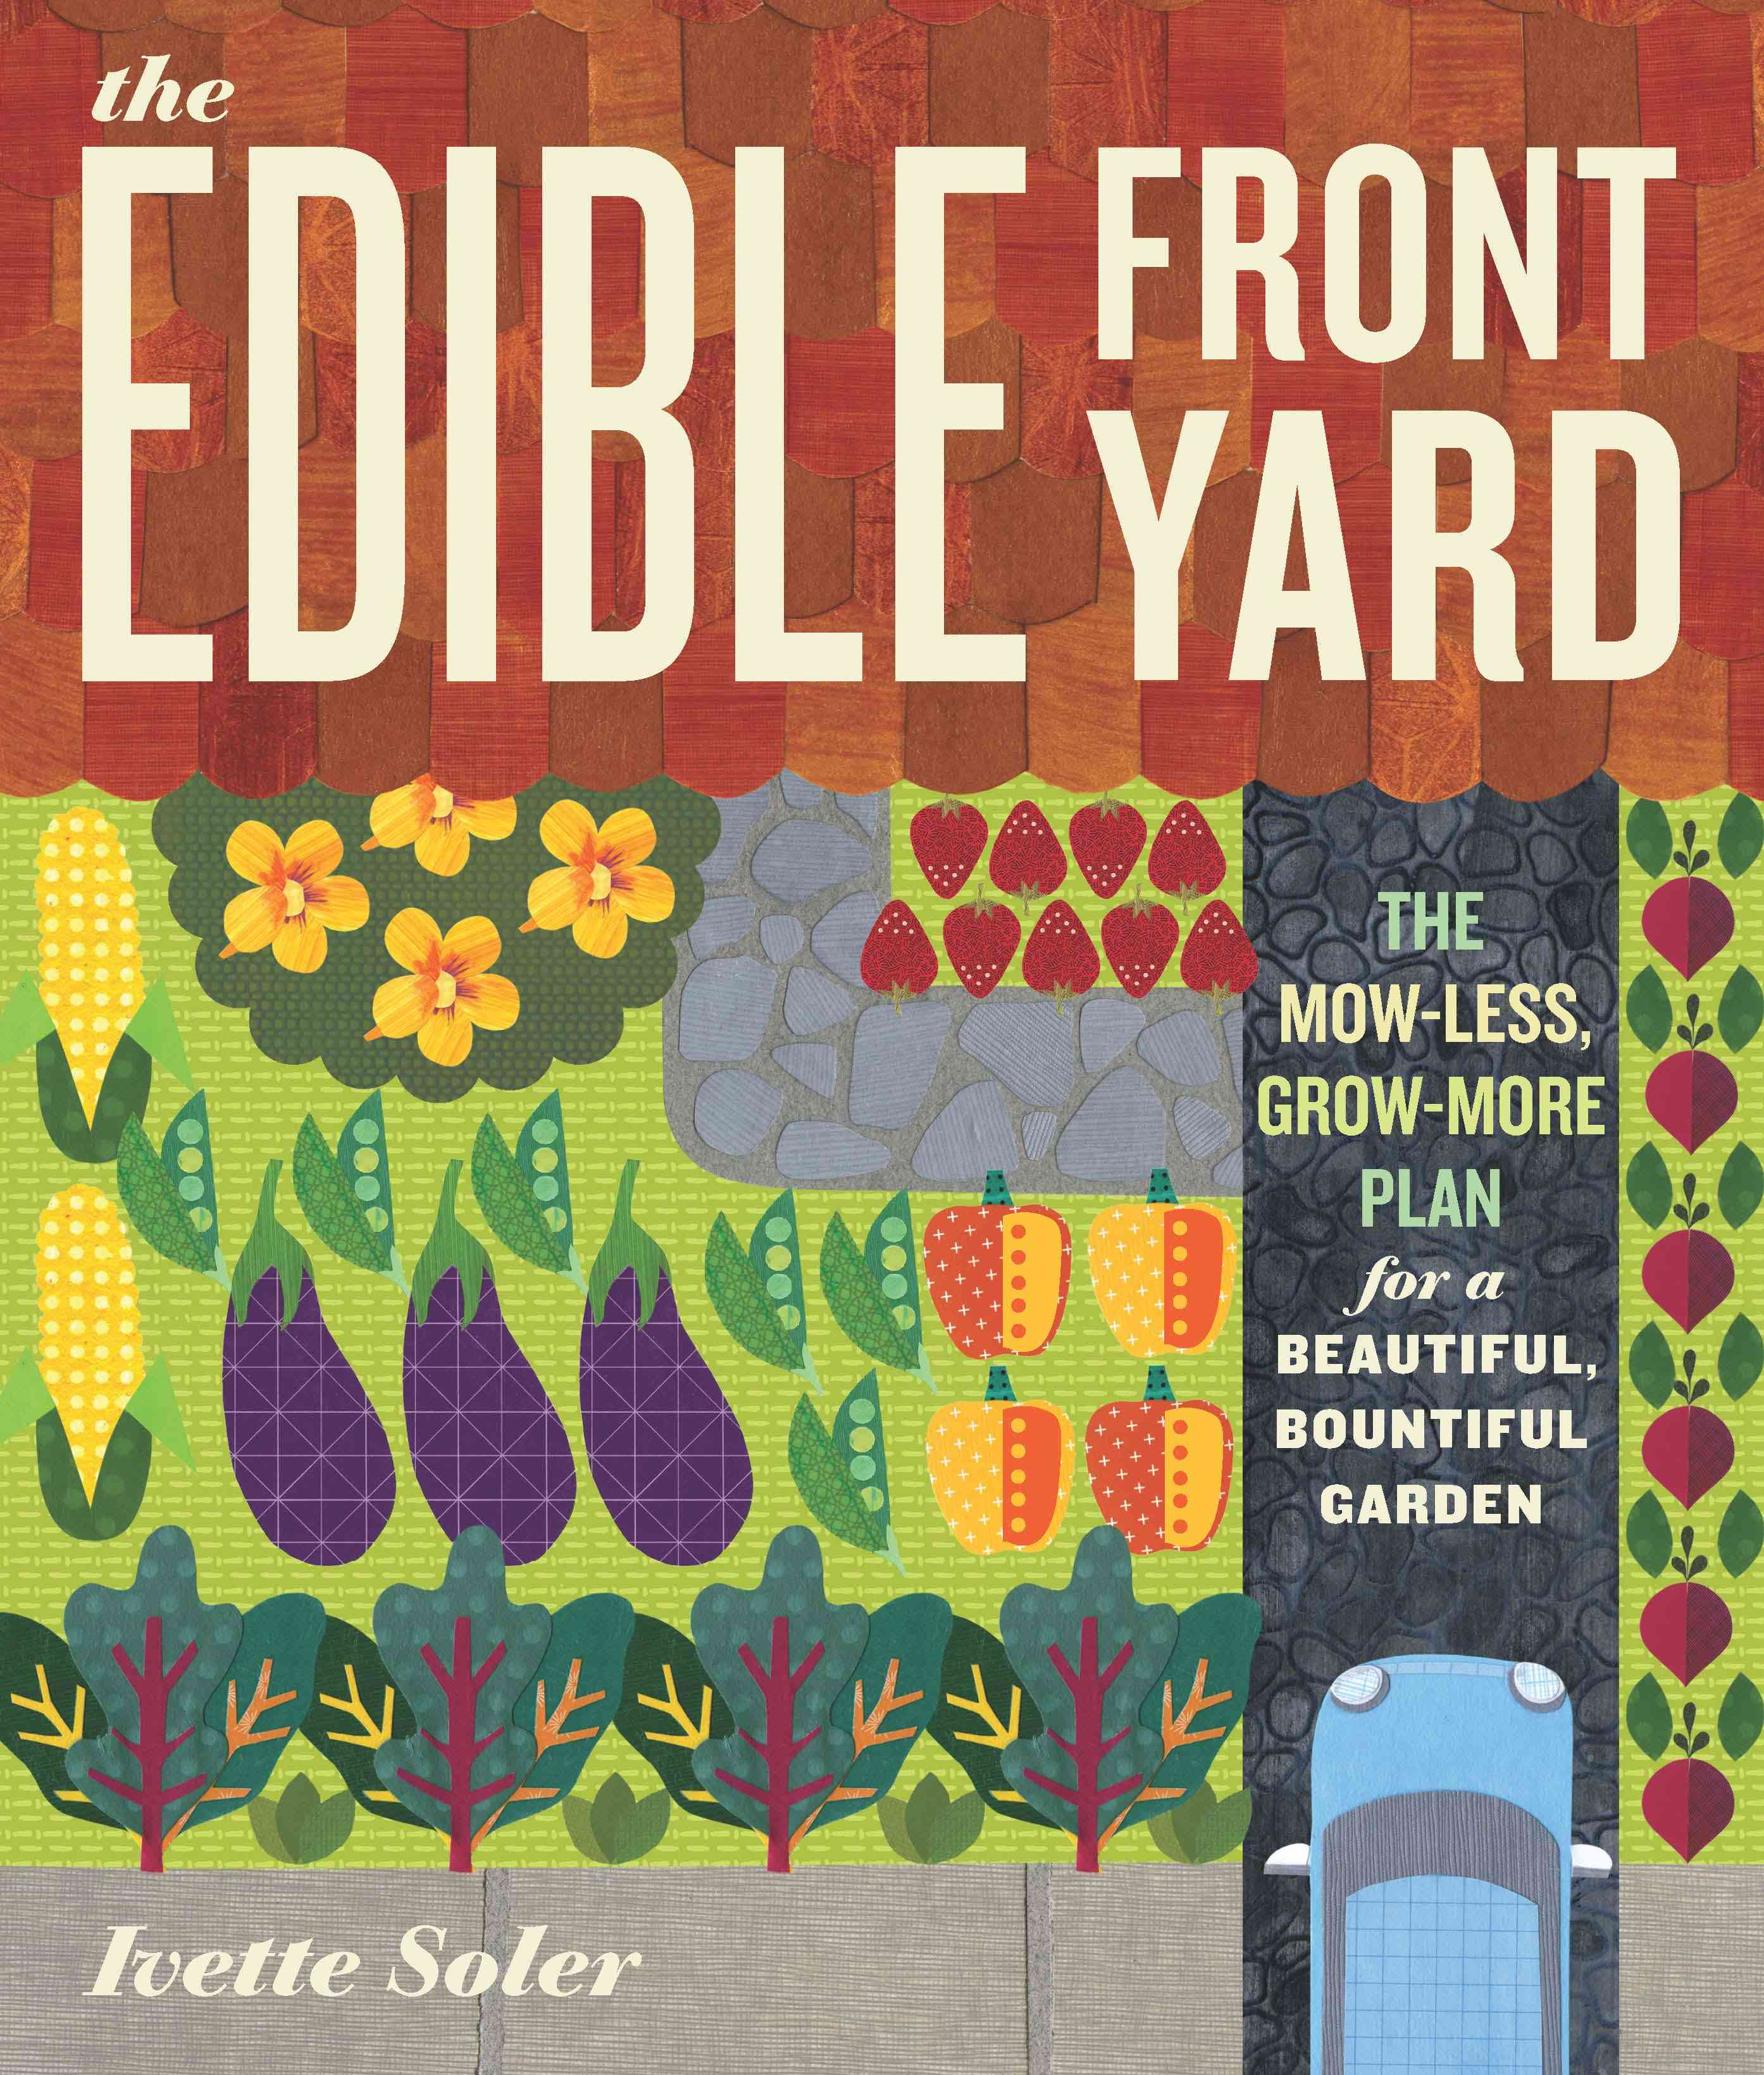 The Edible Front Yard: The Mow-Less, Grow-More Plan for a Beautiful, Bountiful Garden (Paperback)